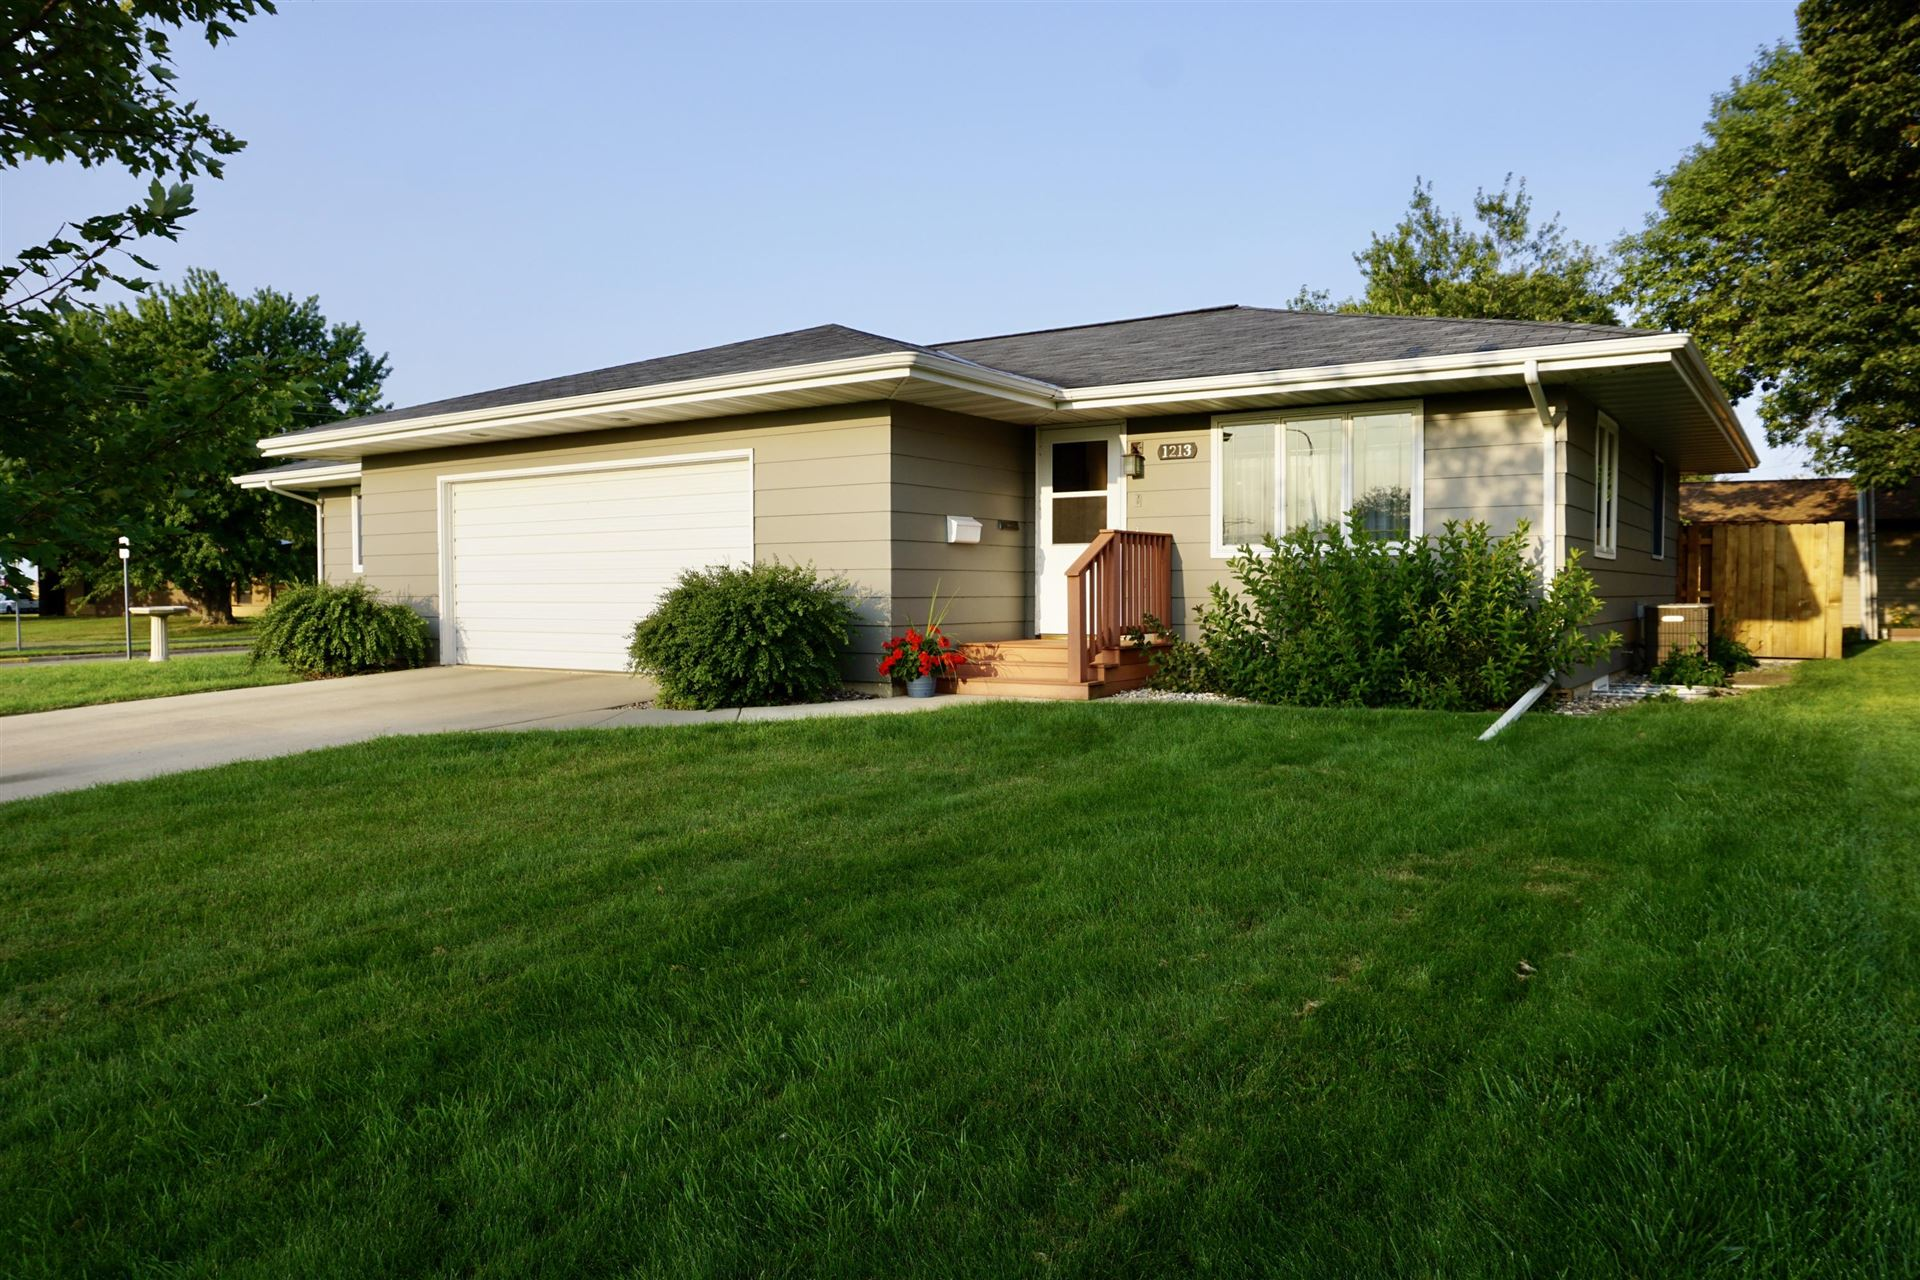 Photo for 1213 2nd Avenue NE, Valley City, ND 58072 (MLS # 20-529)